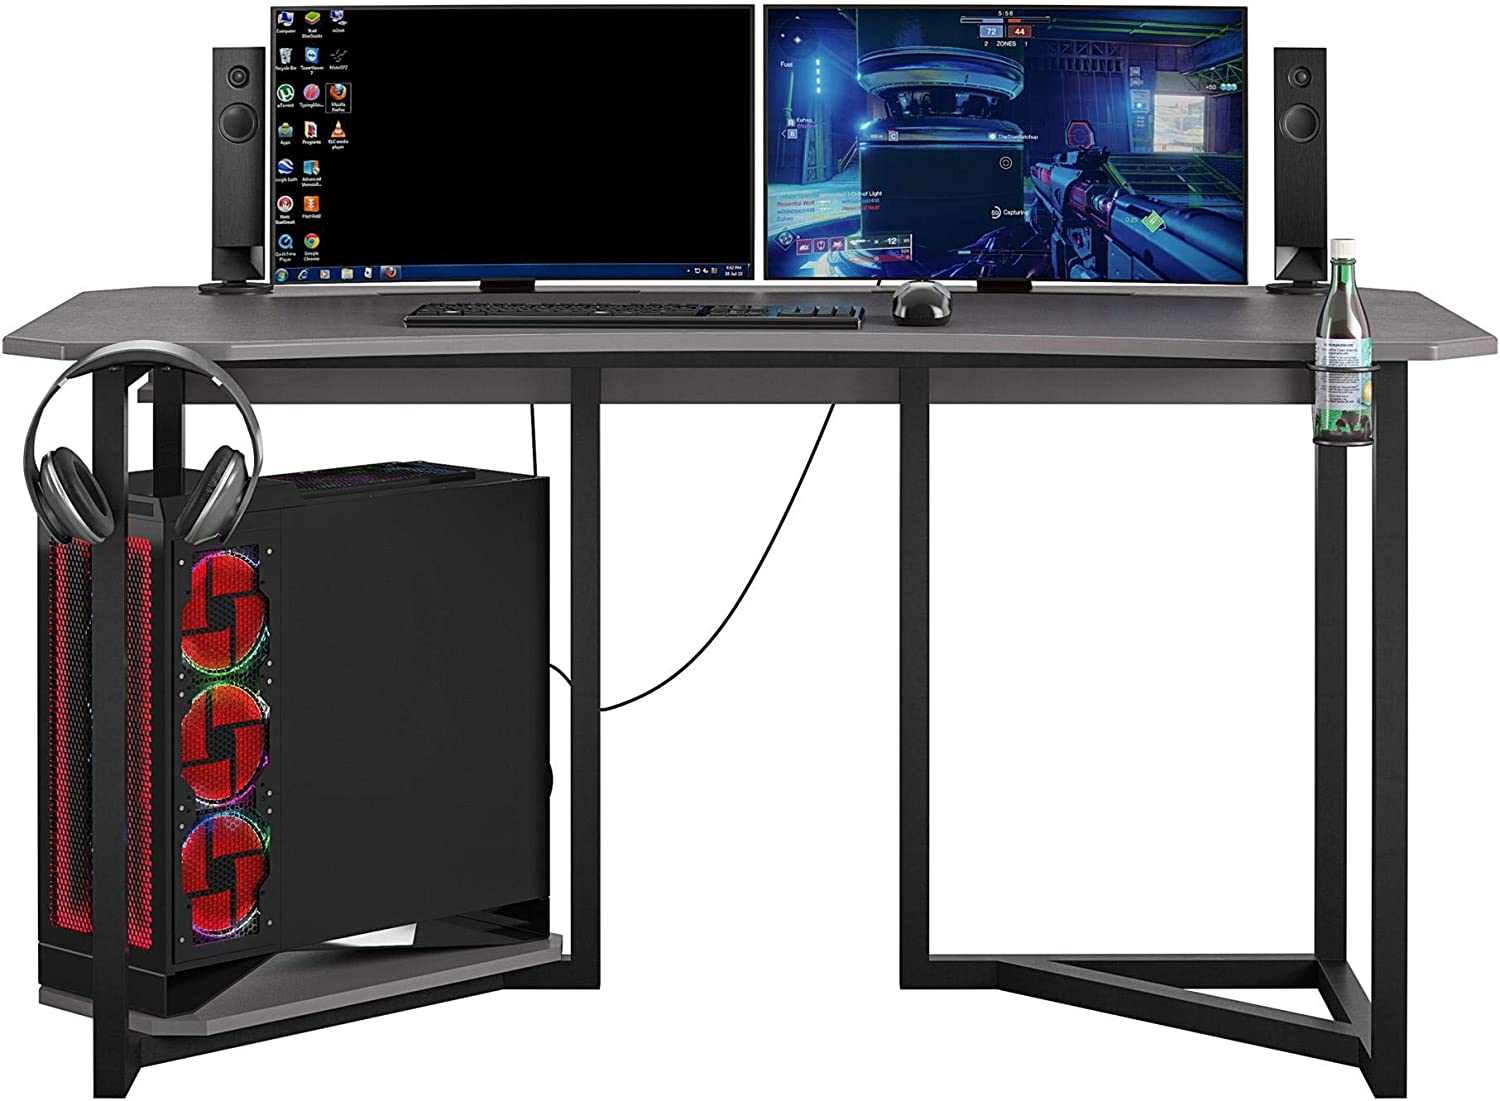 Cash special price NTENSE Bombing free shipping Quest Gaming CPU Gray Stand Desk